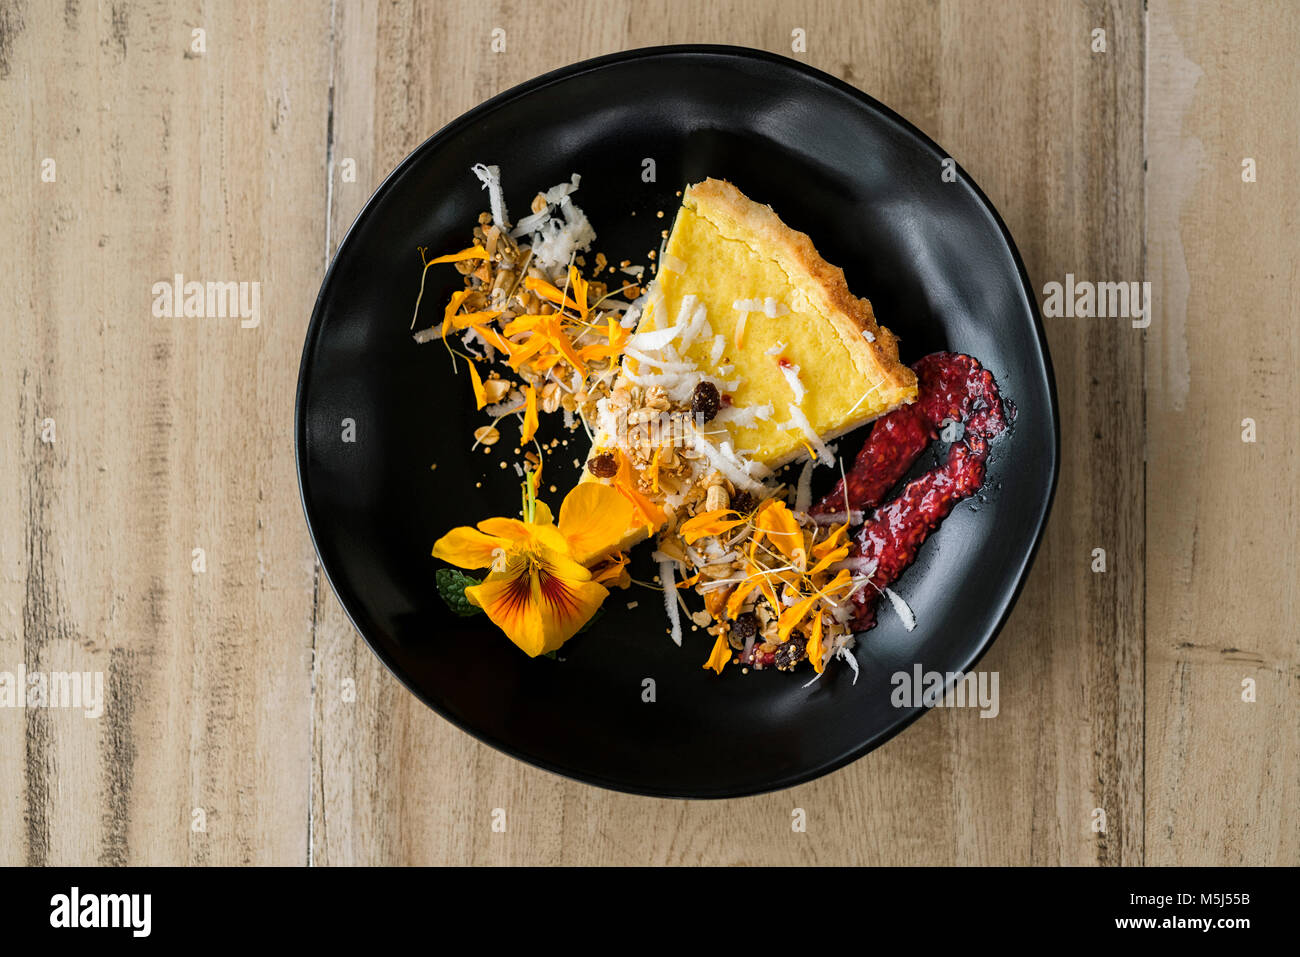 Decorated cheesecake with flowers and strawberry jam - Stock Image